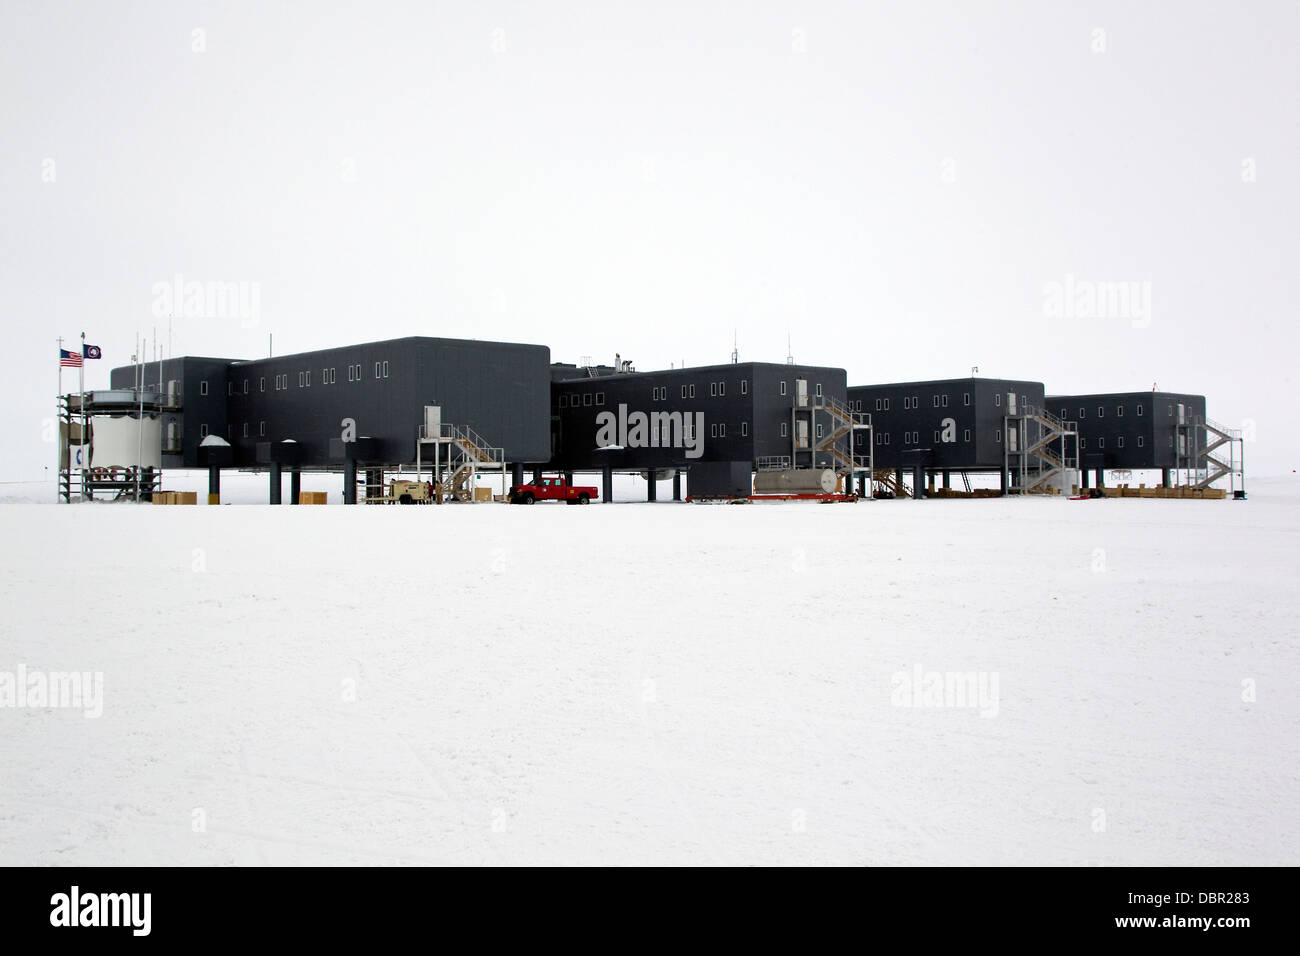 Amundsen-Scott South Pole Station, American scientific research Station, Südpol, Antarktis Stockbild